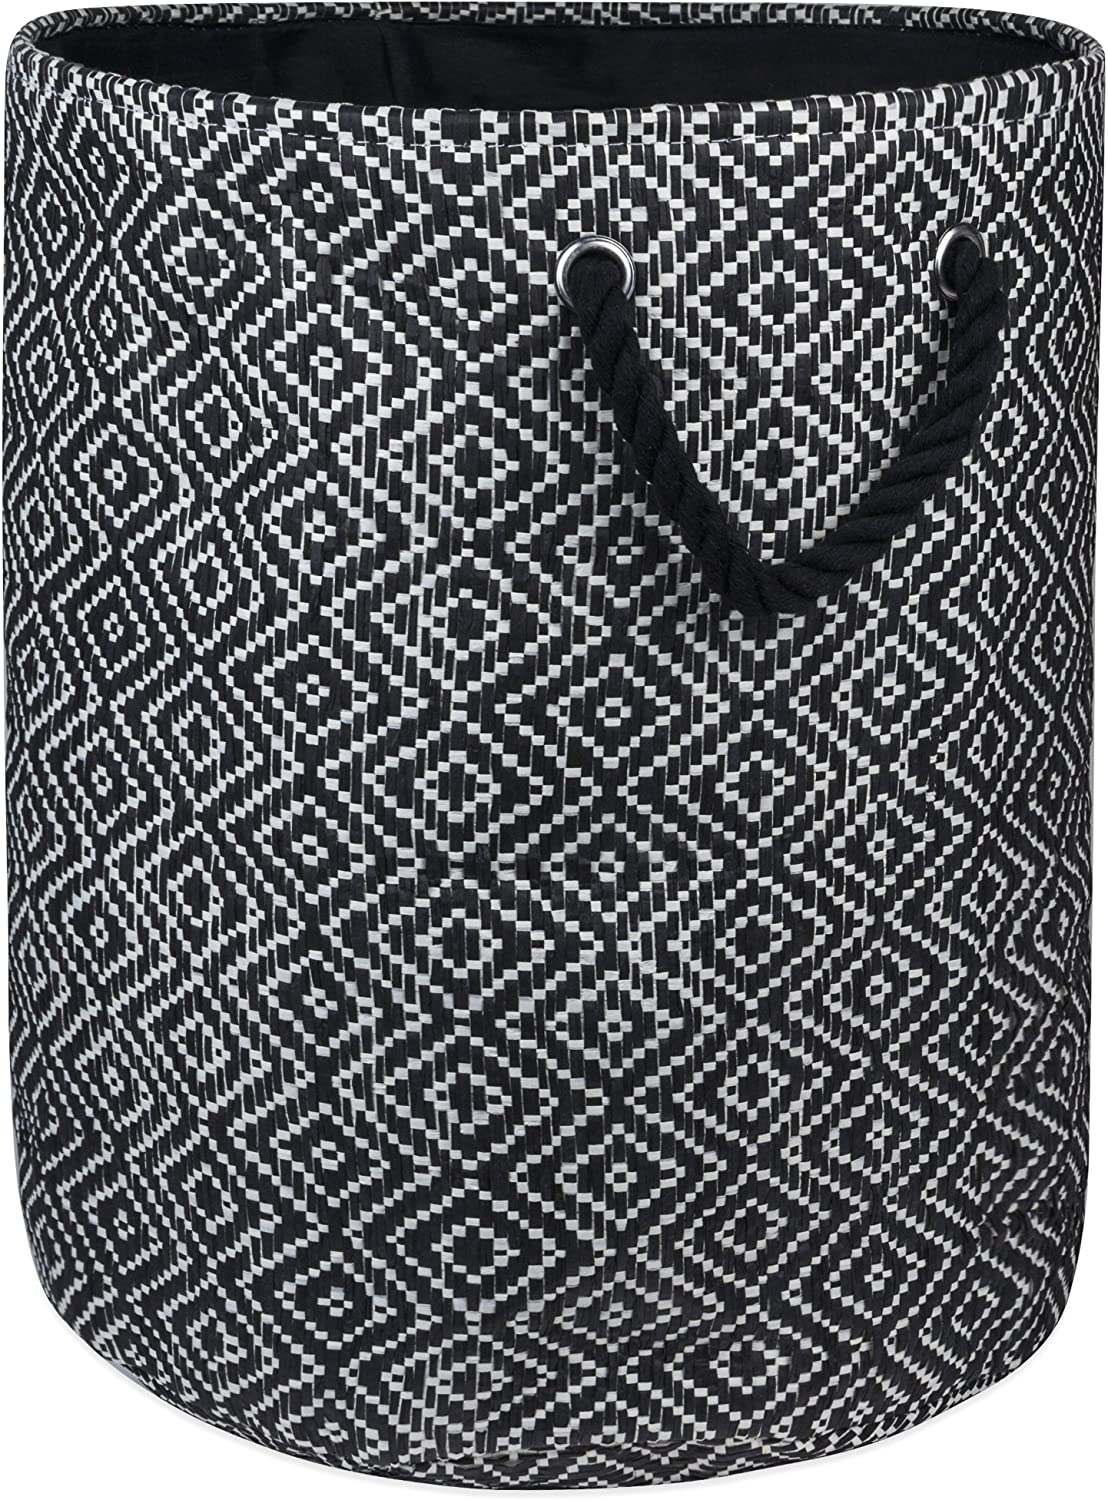 """DII Woven Paper Basket or Bin, Collapsible & Convenient Home Organization Solution for Bedroom, Bathroom, Dorm or Laundry(Large Round - 15x20""""), Black & White Diamond Basketweave"""